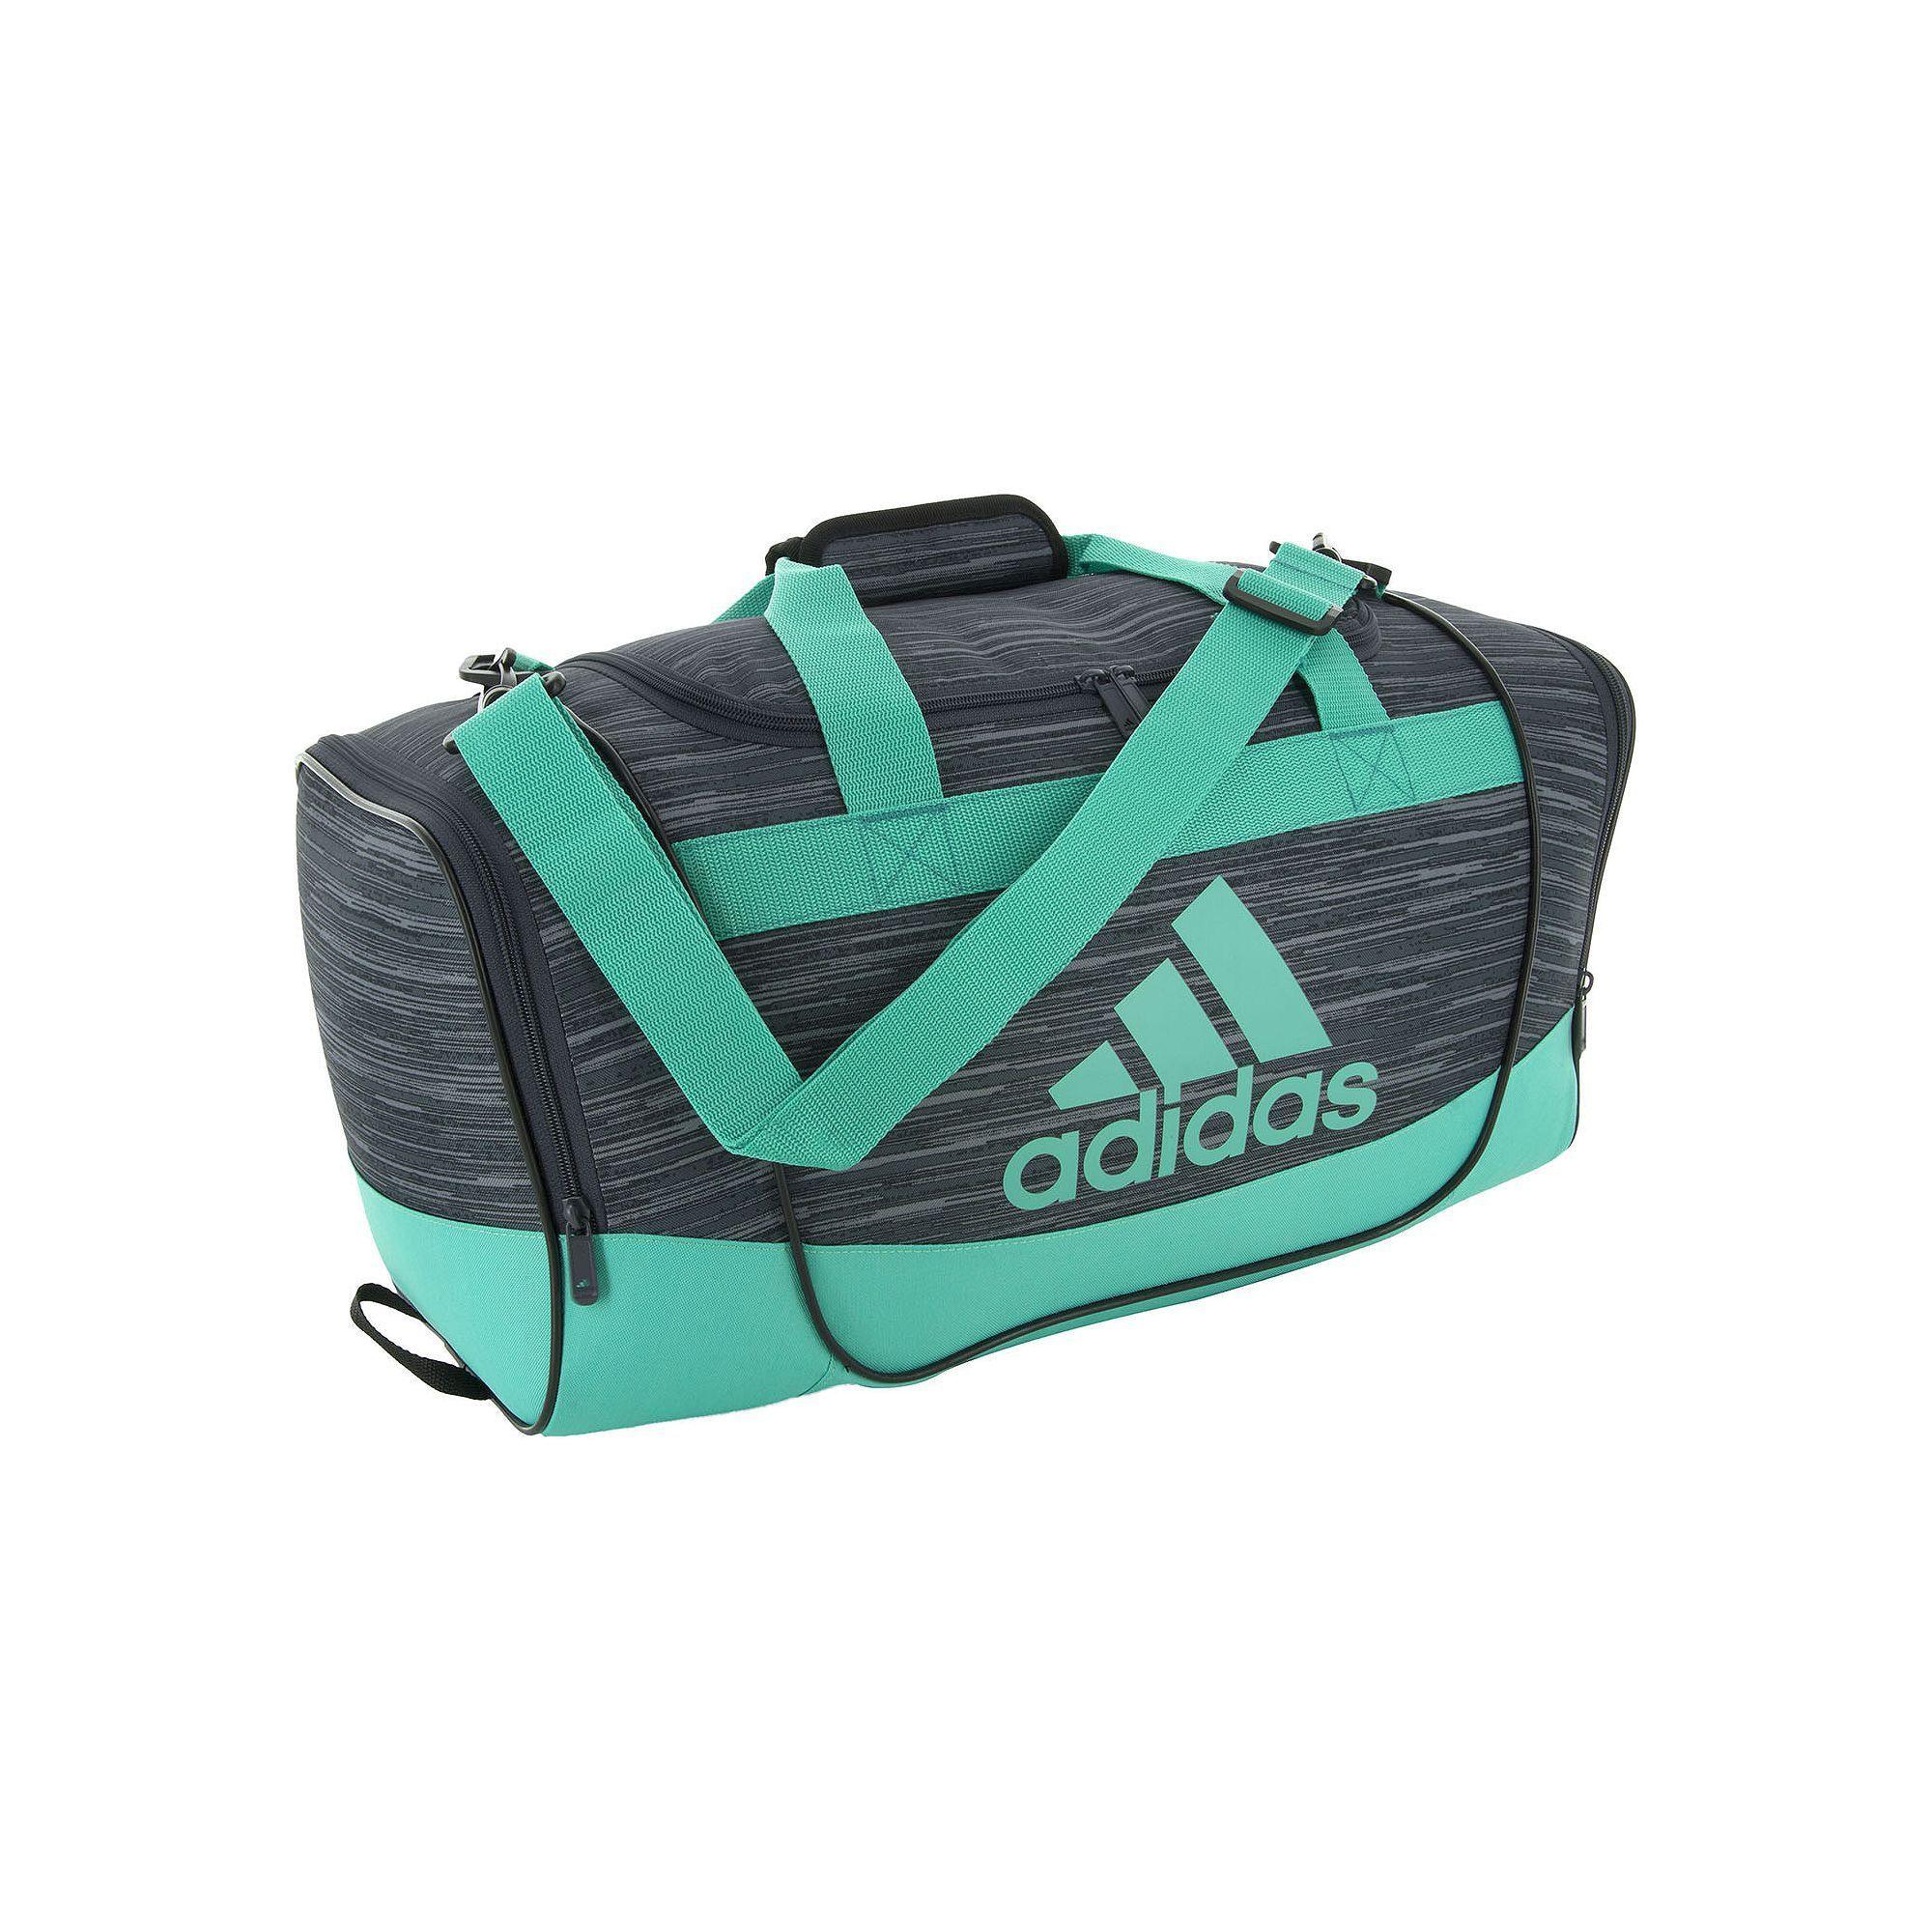 1739ac91c adidas Defender II Small Duffel Bag in 2019 | Products | Adidas ...